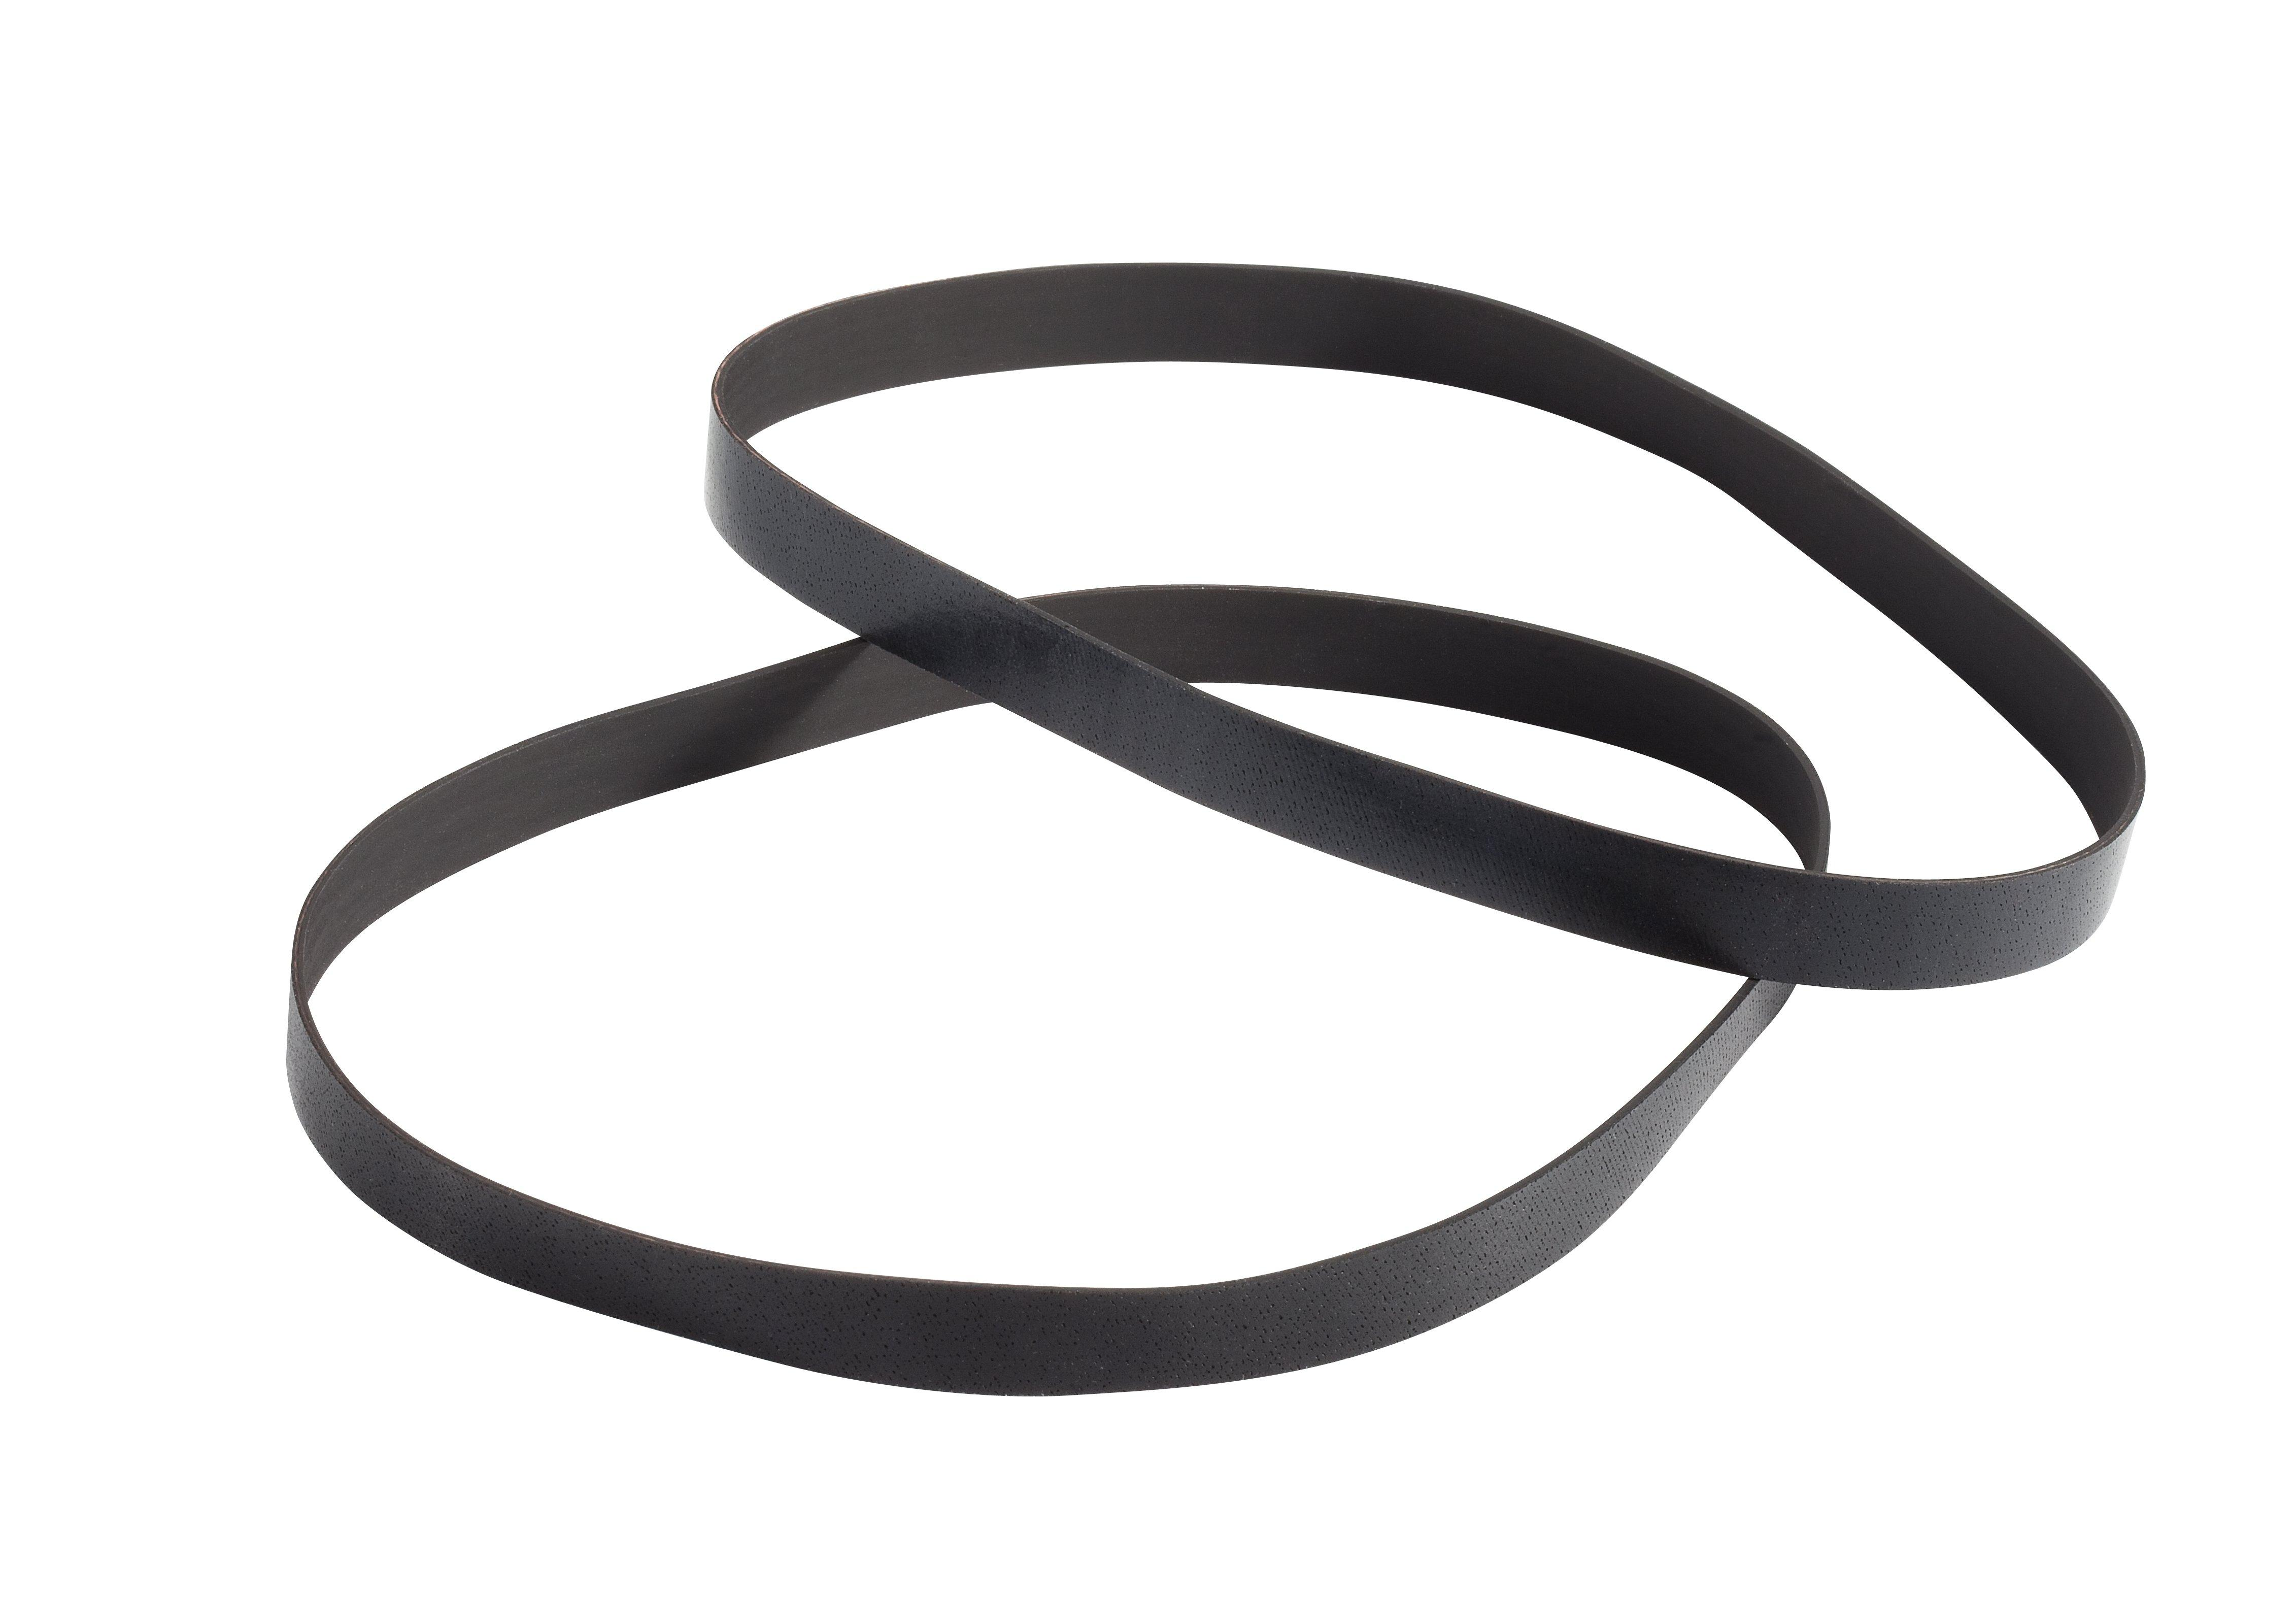 Flat Non-Stretch Belt -  2 Pack for Select Hoover Bagless Uprights